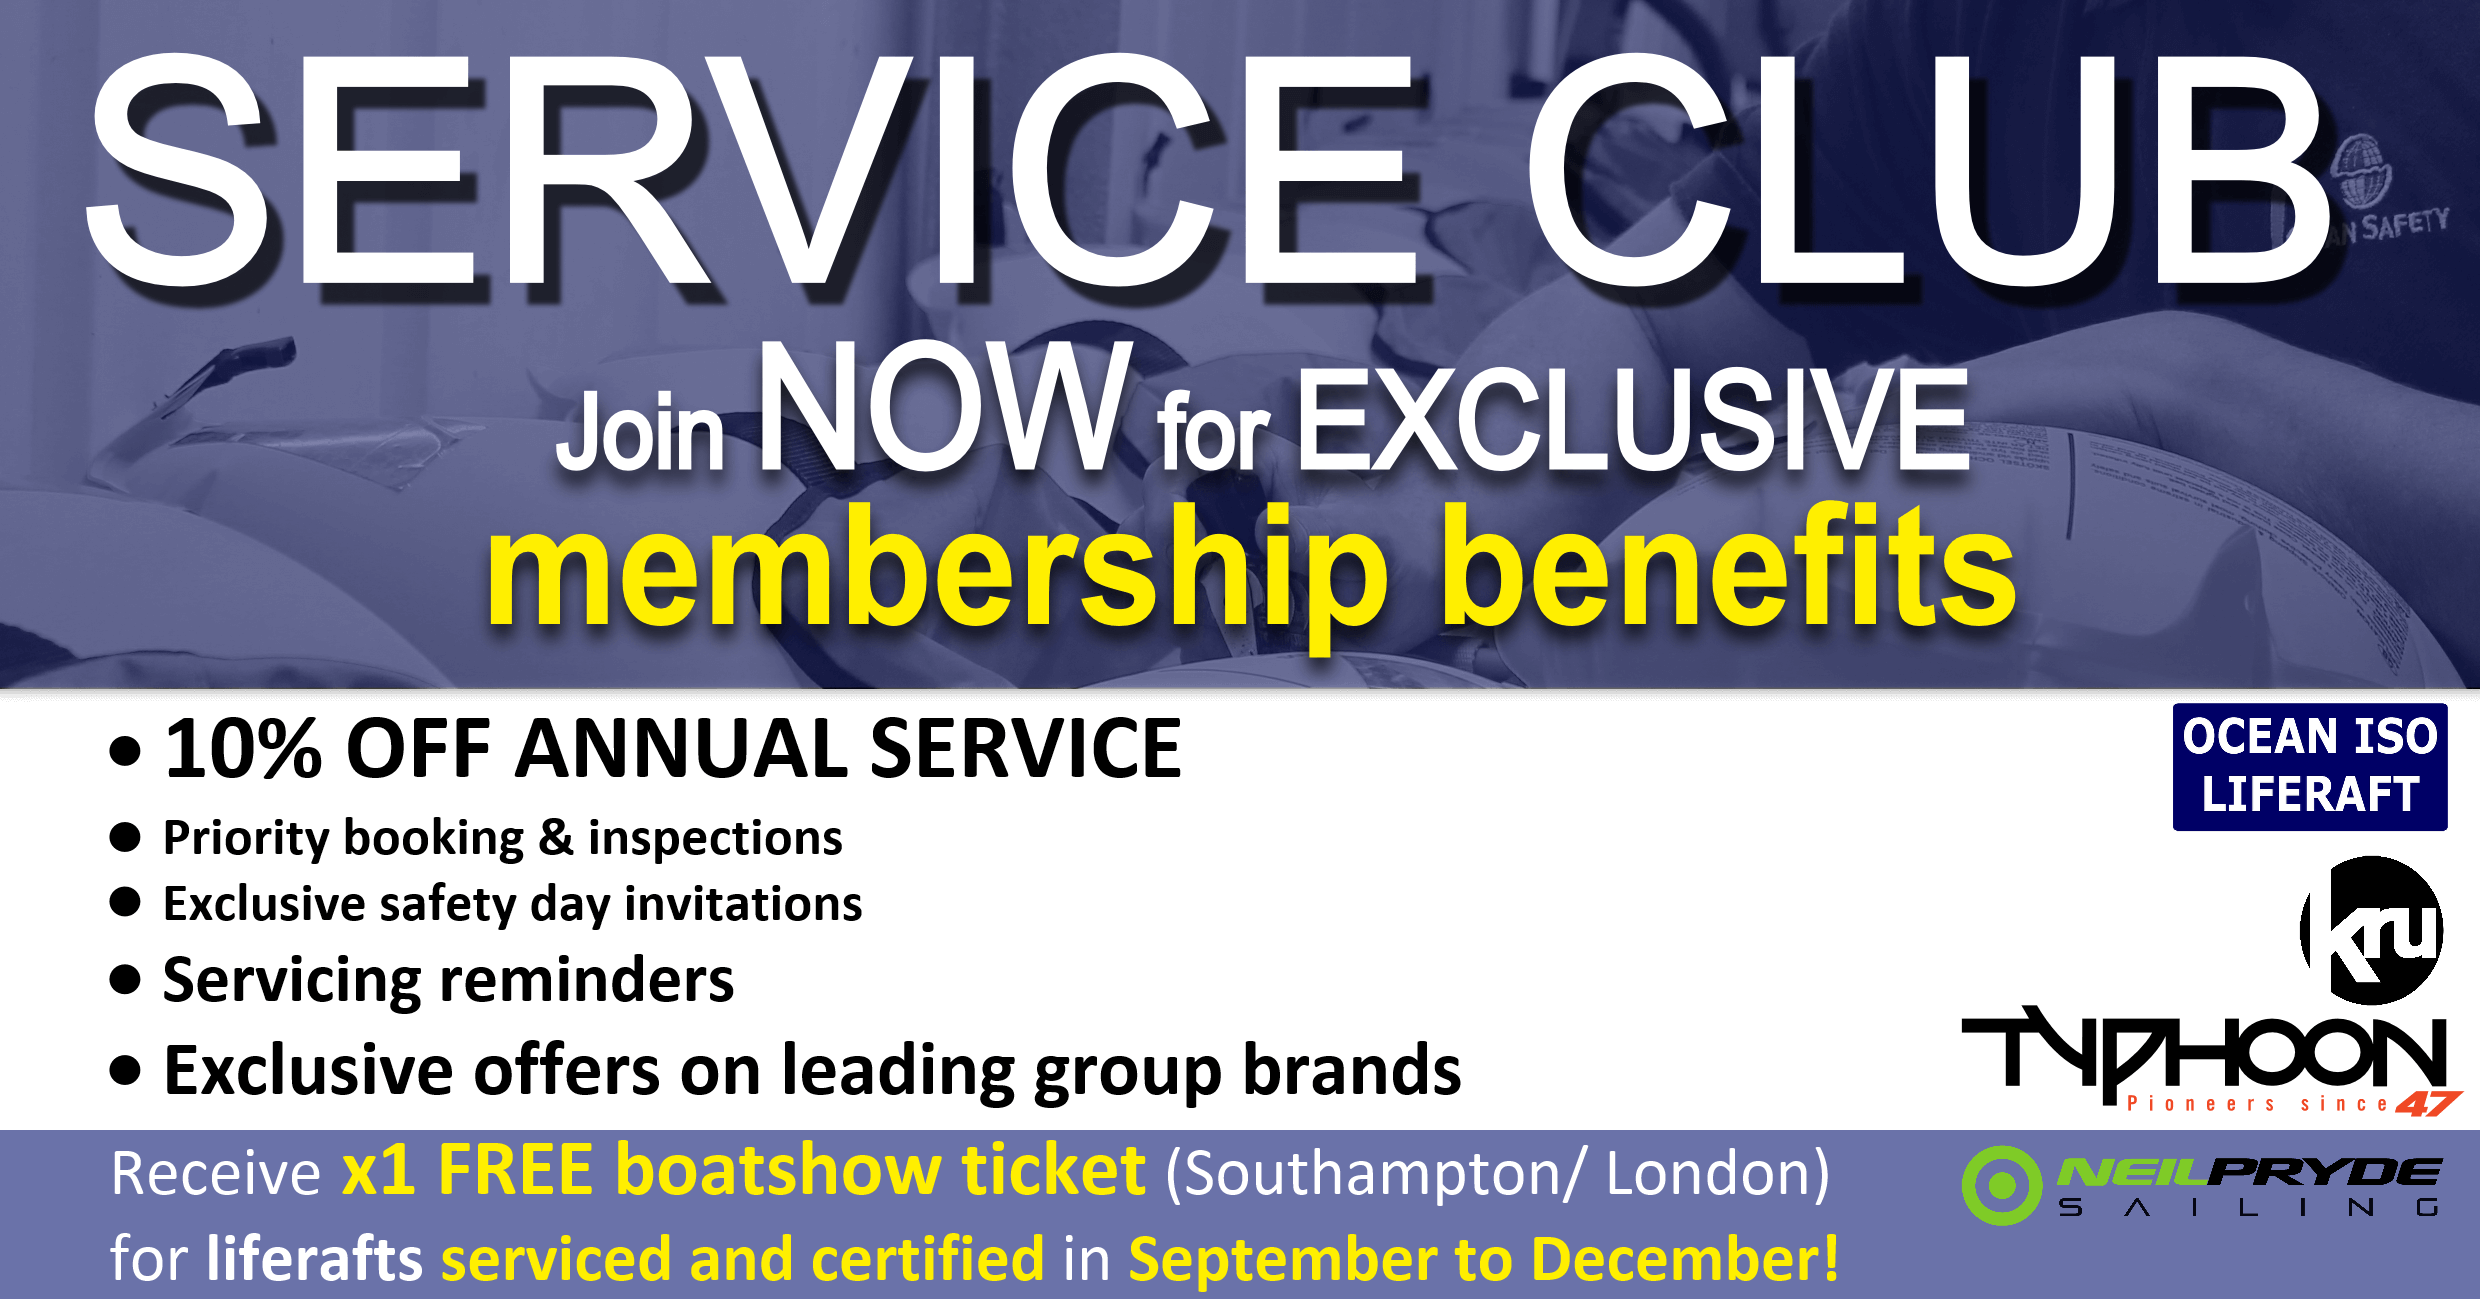 Service club image for webpage